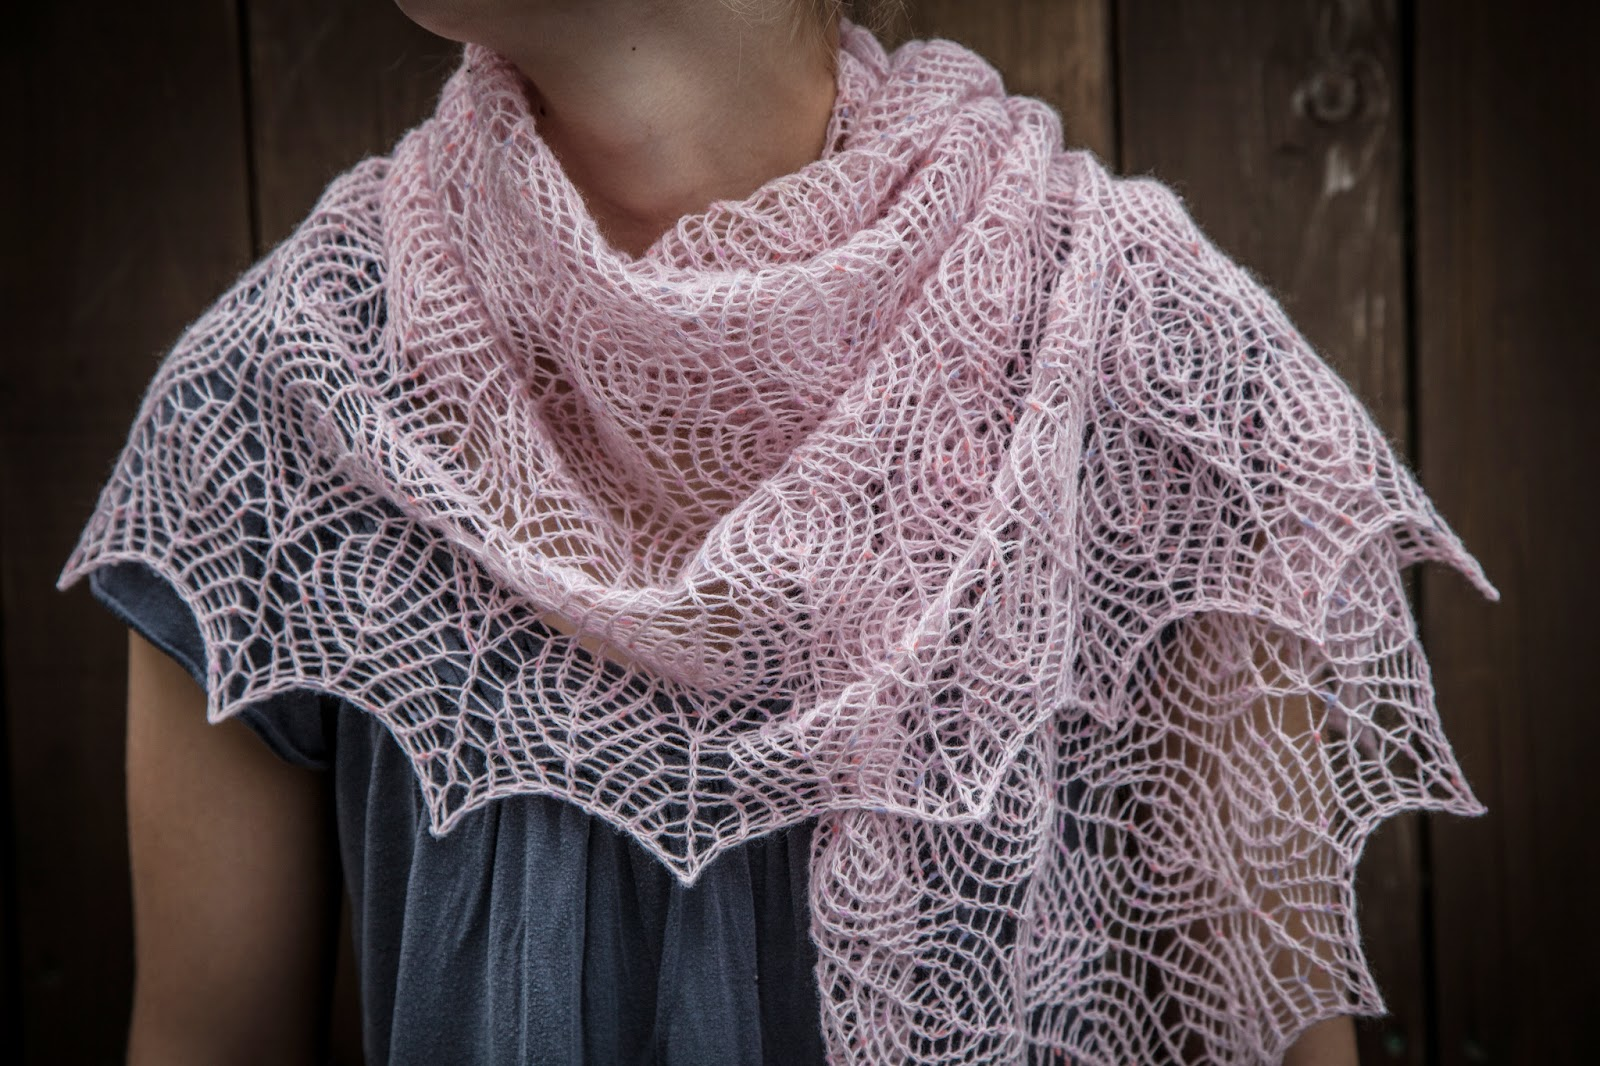 Knitting Patterns For Lace Shawls : Renee Knits Too: Shetland Lace Triangle Shawl